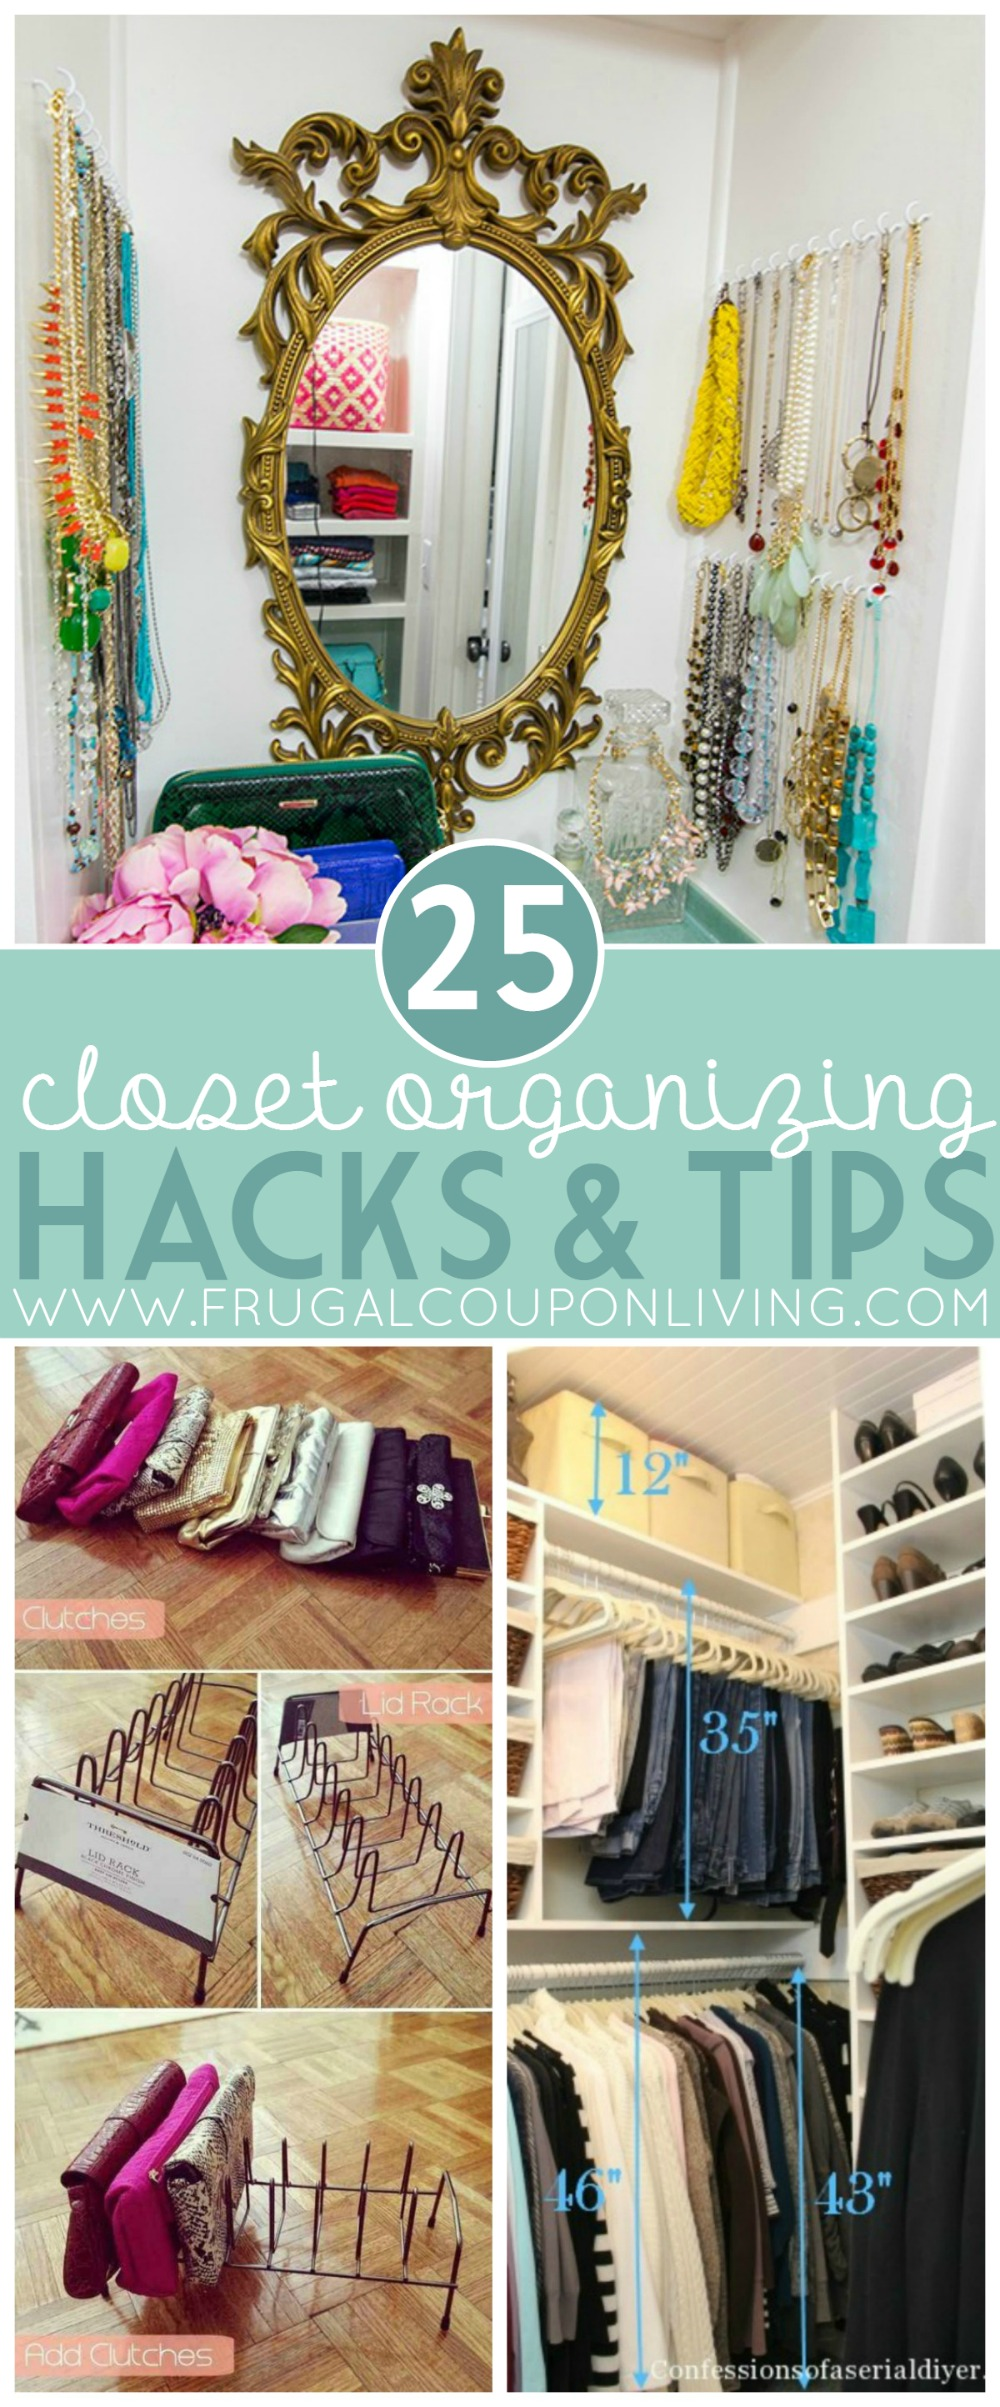 25-Closet-organizing-hacks-tips-frugal-coupon-living